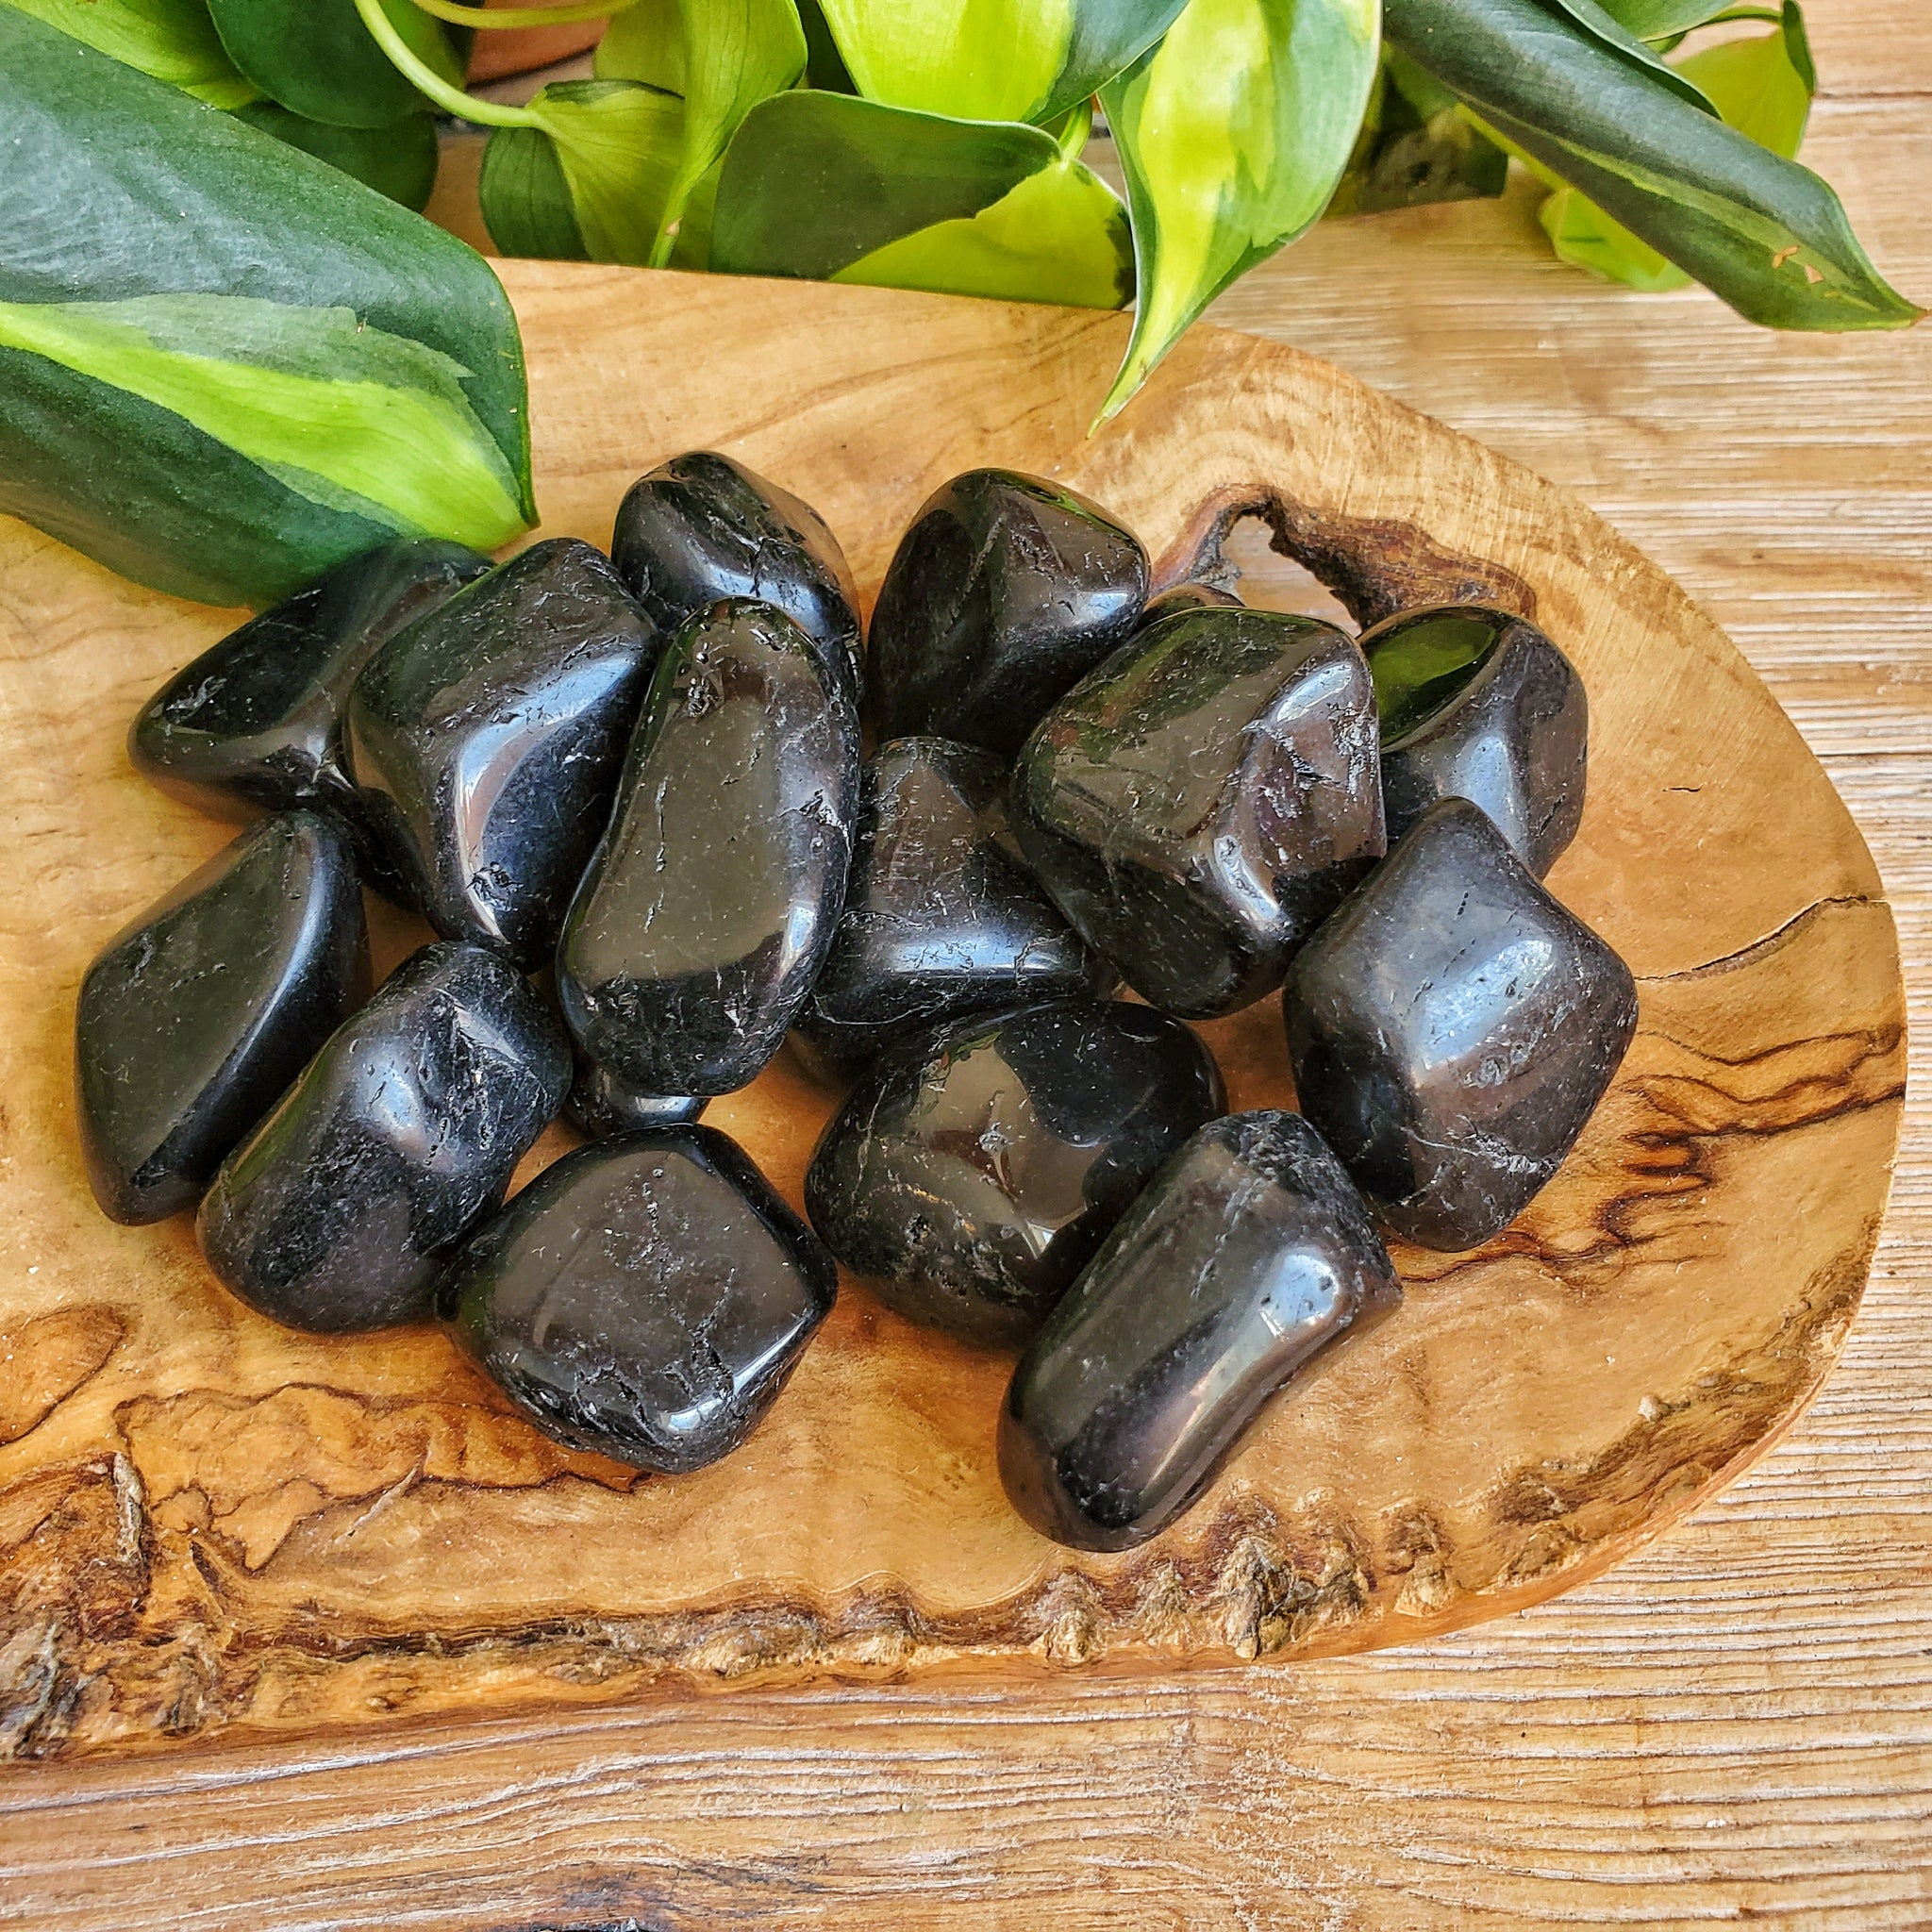 Black Tourmaline Tumbled Stone - LG